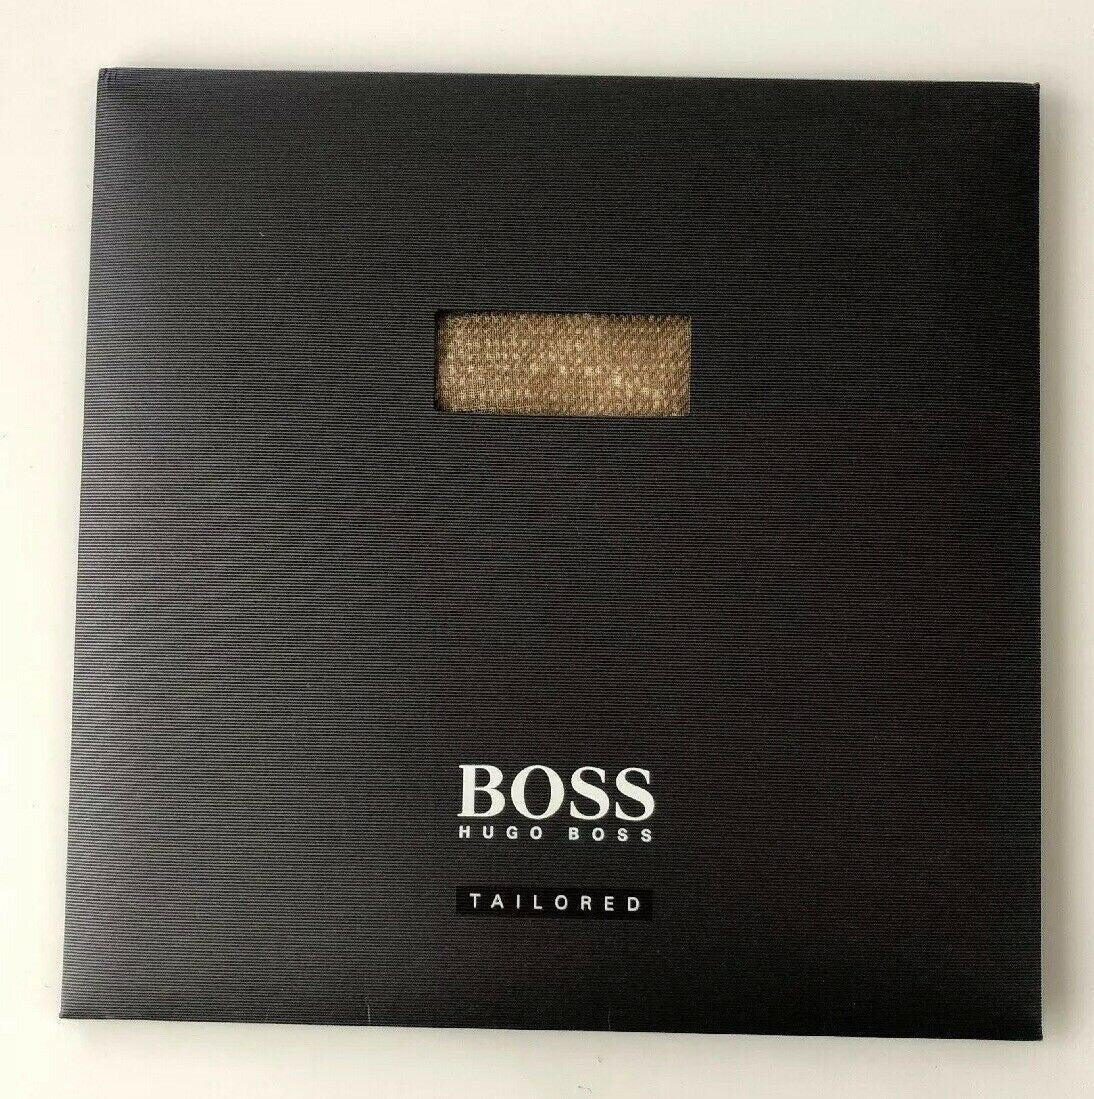 NIB HUGO BOSS Tailored Beige T-Pocket Square 100% Wool Made in Italy